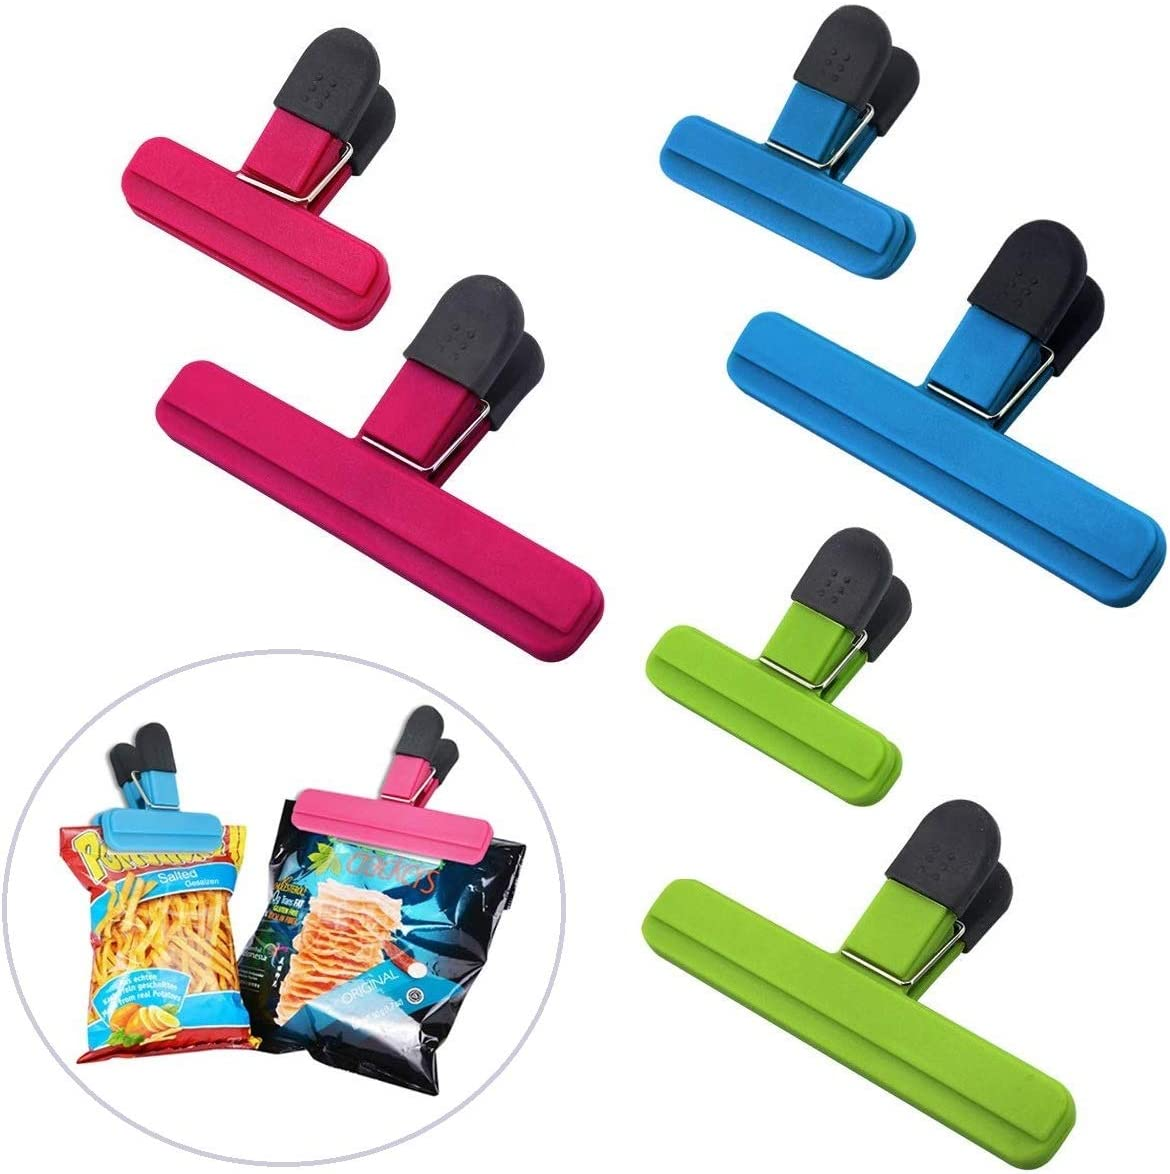 Large Chip Clips Food Clips Bag Sealing Clips with Good Grips Plastic Heavy Duty Air Tight Seal Grip Assorted Colors for Coffee Potato and Food Bags (6 Pcs)